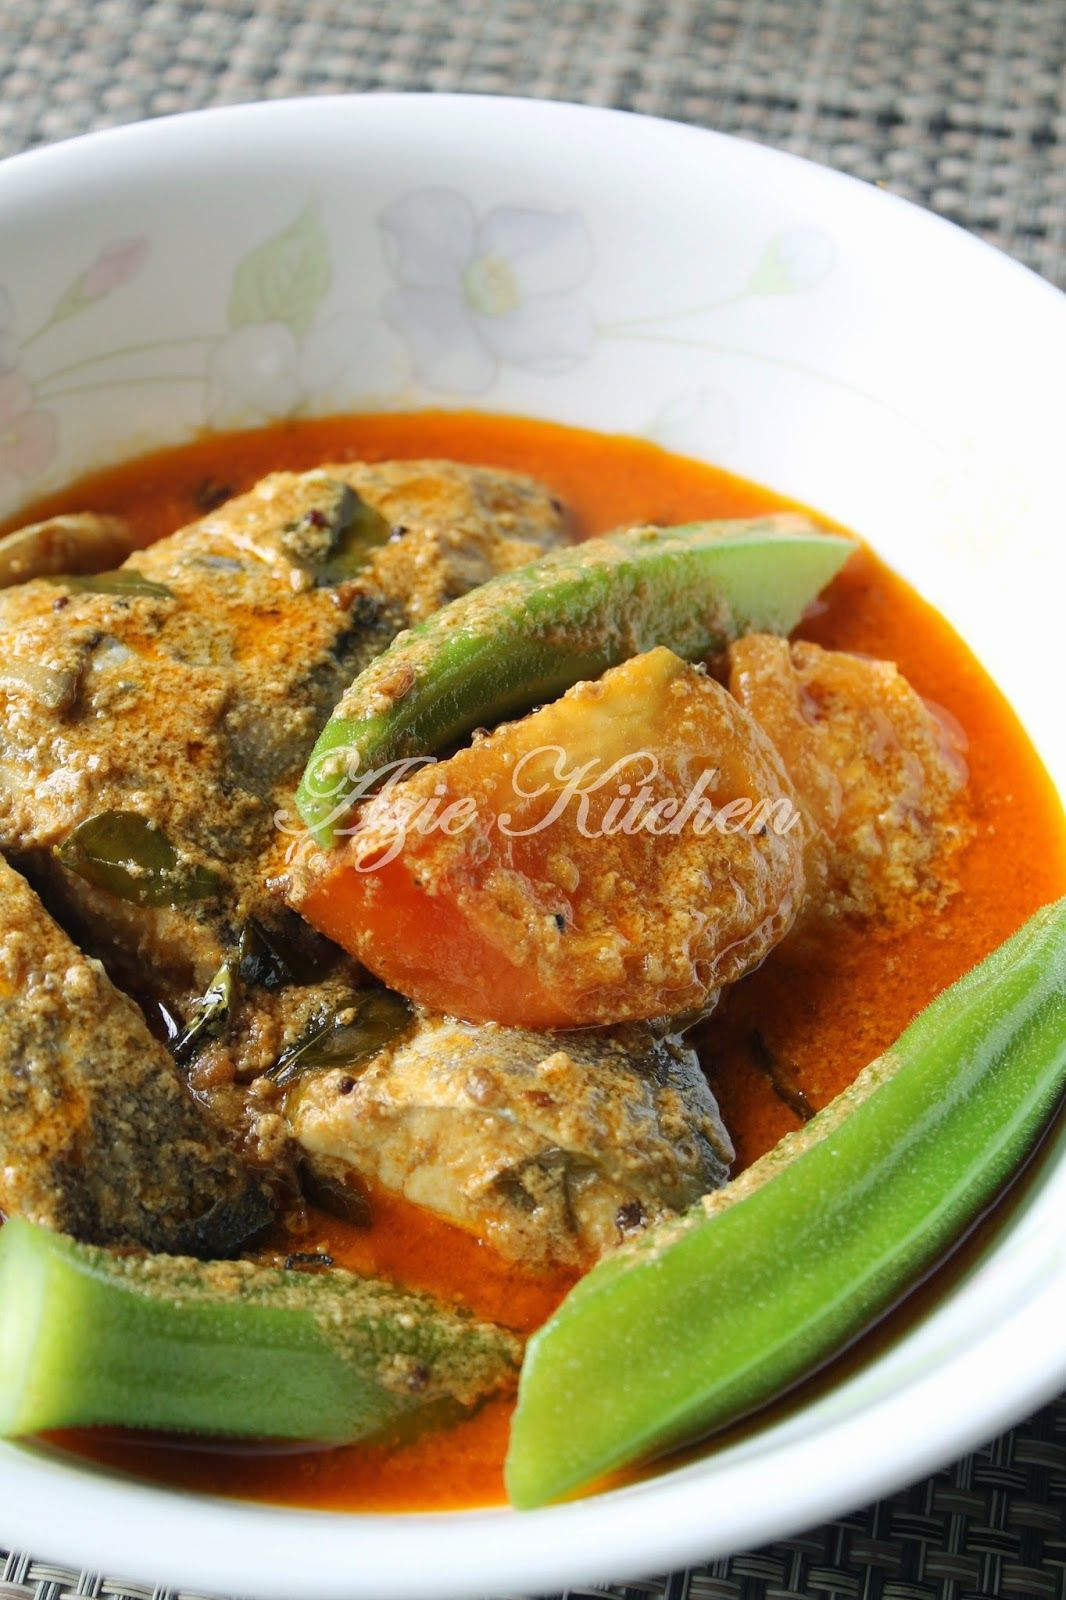 Azie Kitchen: Kari Ikan Aji Aji | Malay food | Pinterest